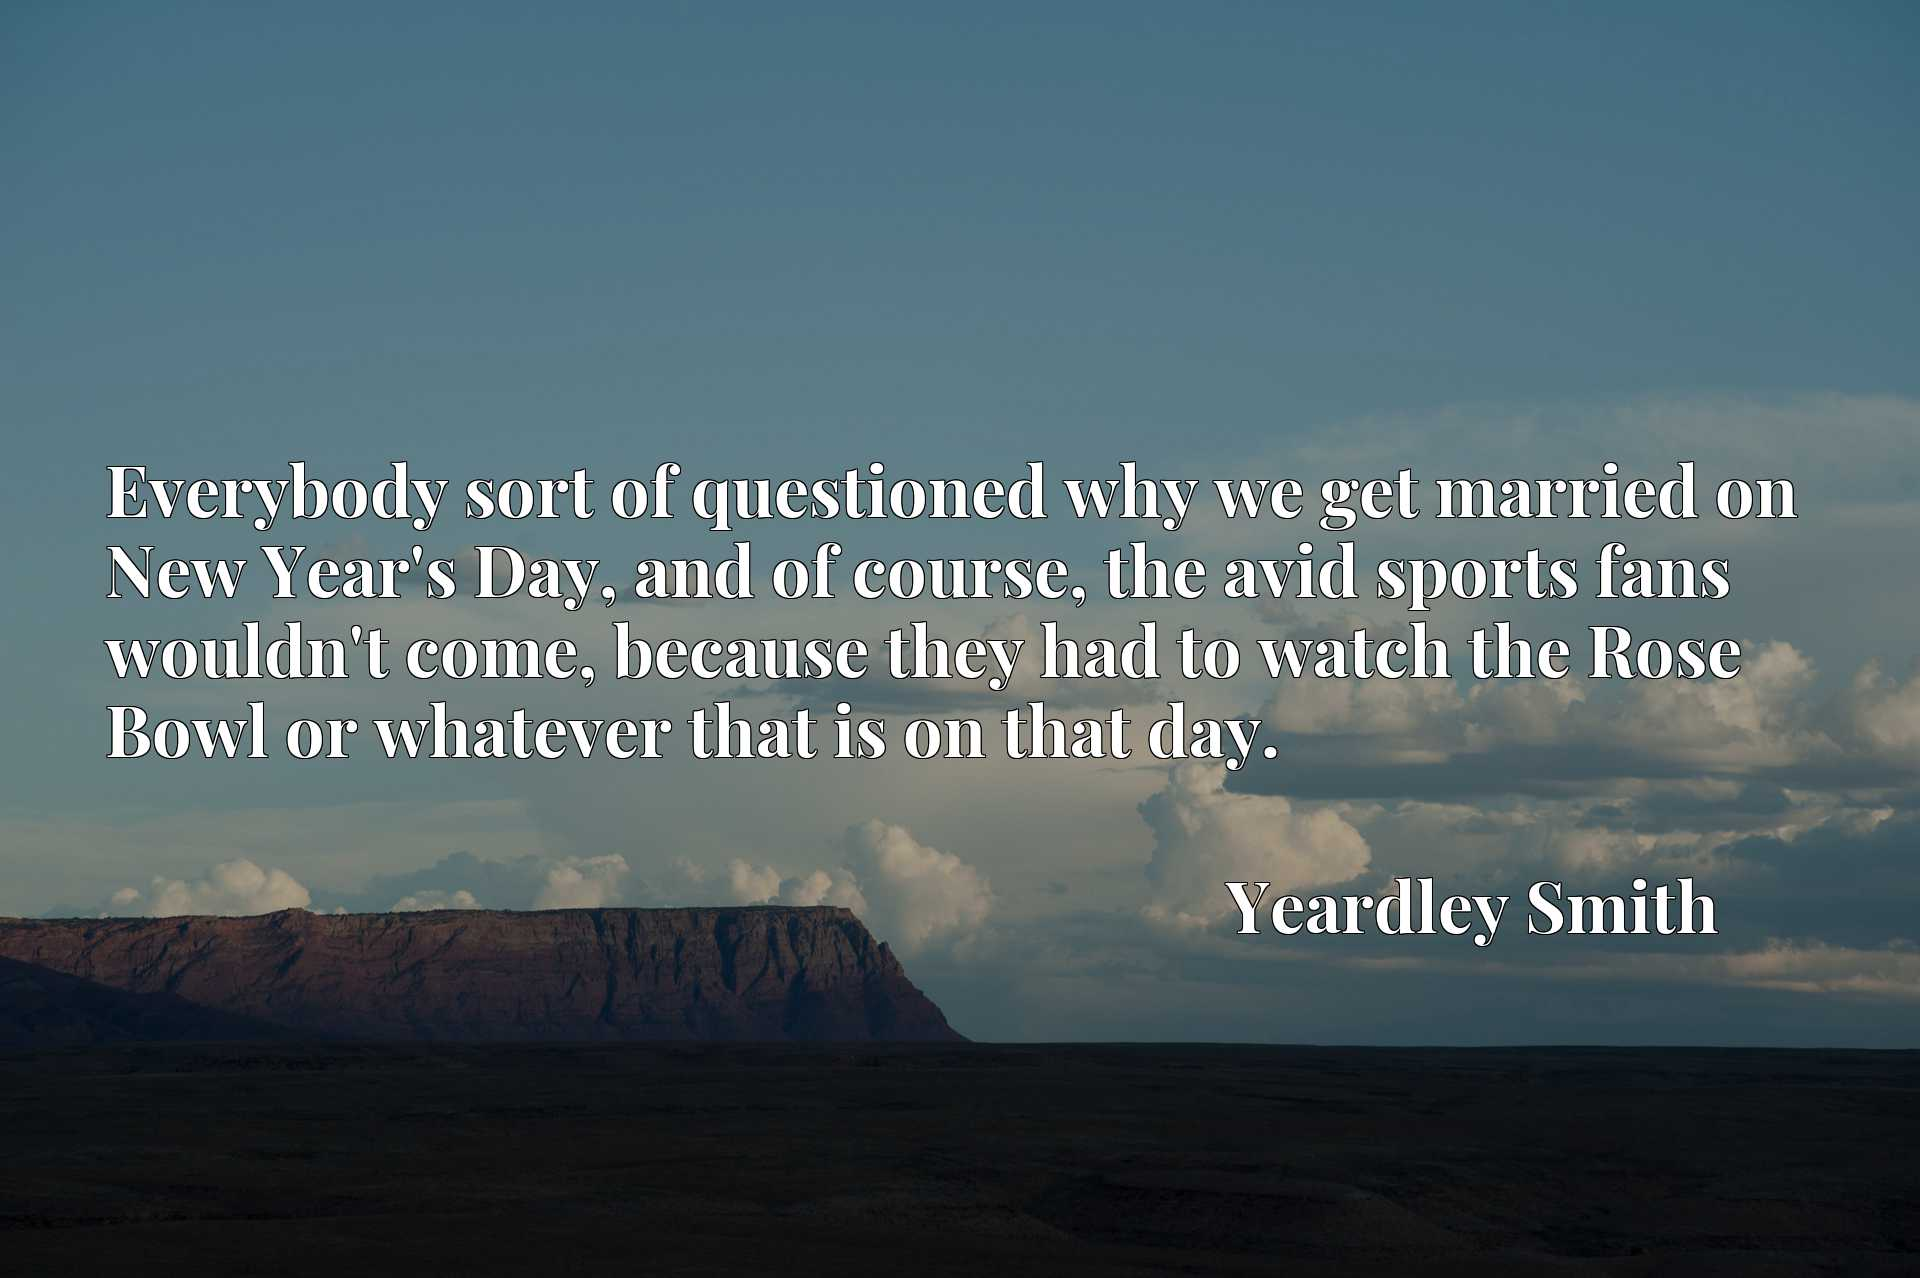 Quote Picture :Everybody sort of questioned why we get married on New Year's Day, and of course, the avid sports fans wouldn't come, because they had to watch the Rose Bowl or whatever that is on that day.